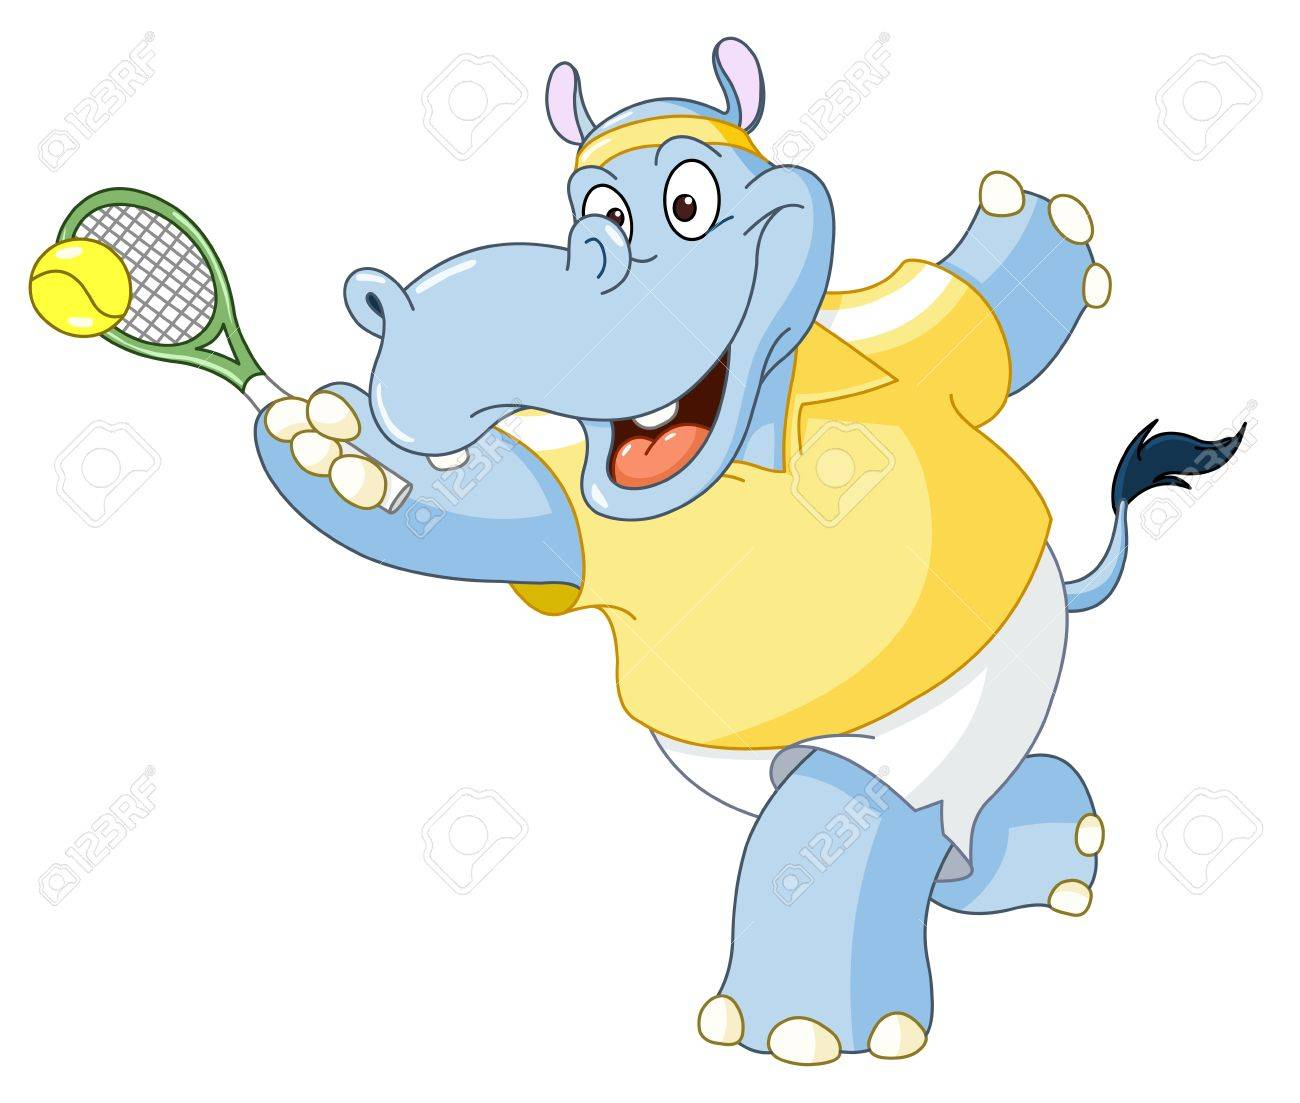 Tennis hippo Stock Vector - 14396172